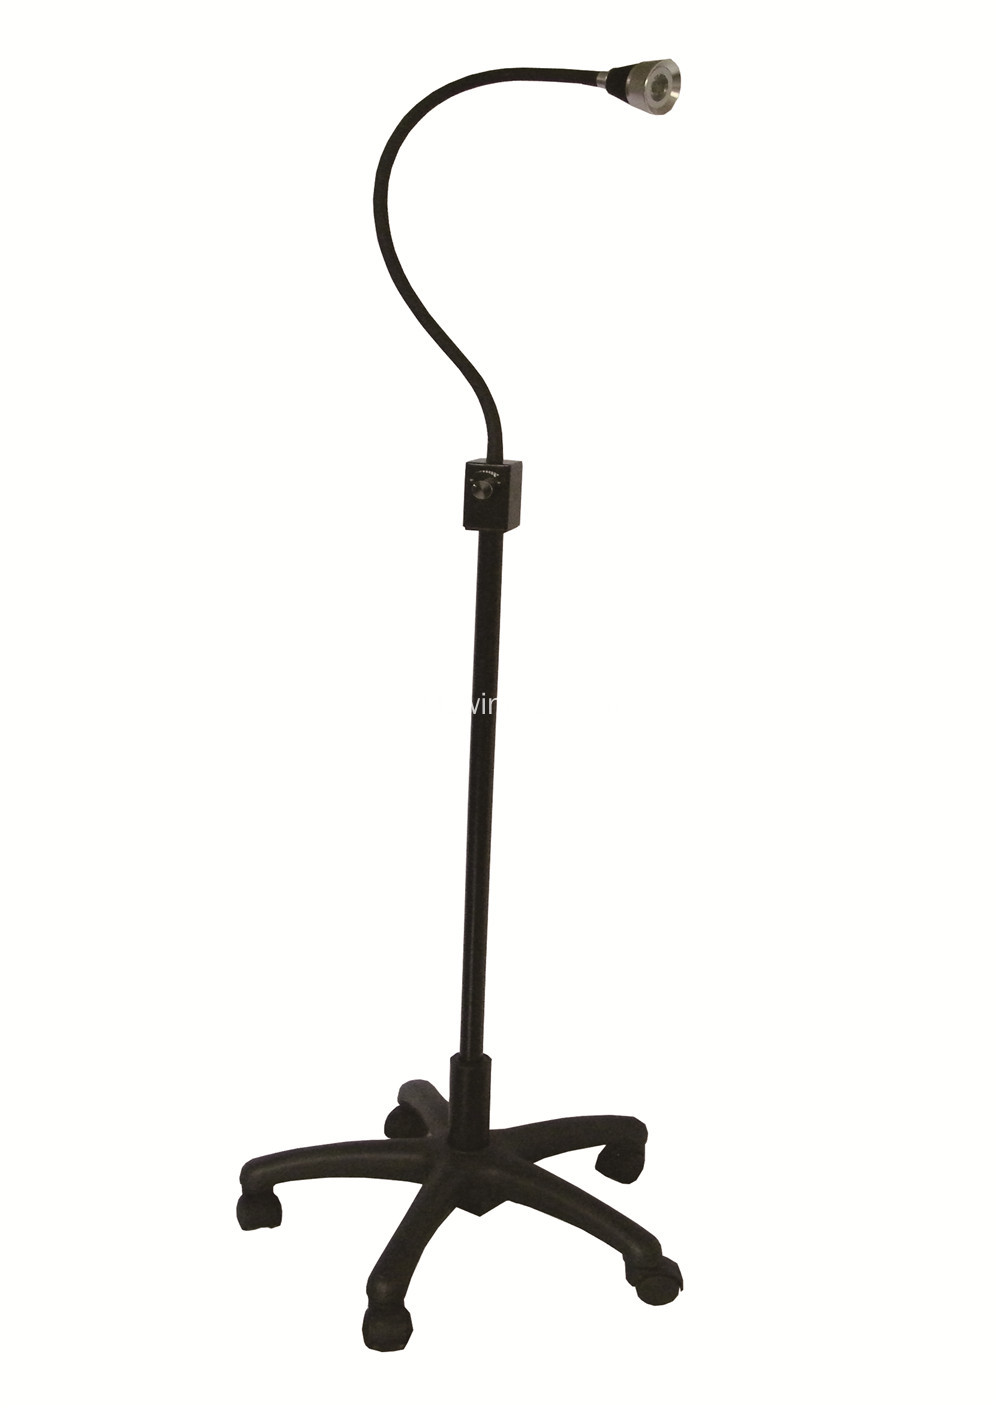 gooseneck portable examination light